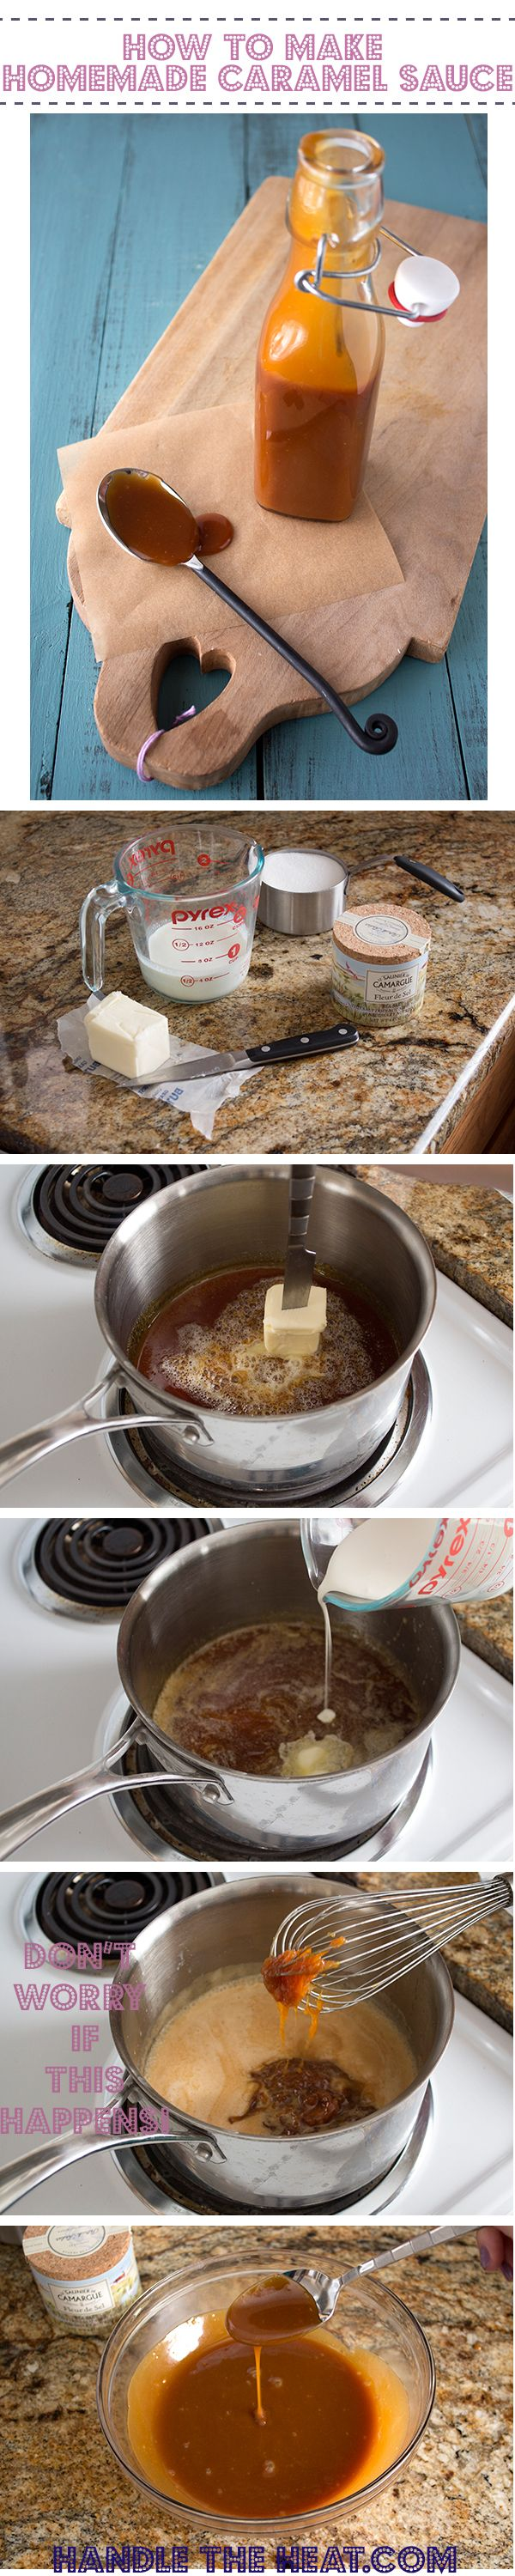 How to Make Caramel Sauce with step-by-step photos AND a video! So much better than store-bought!